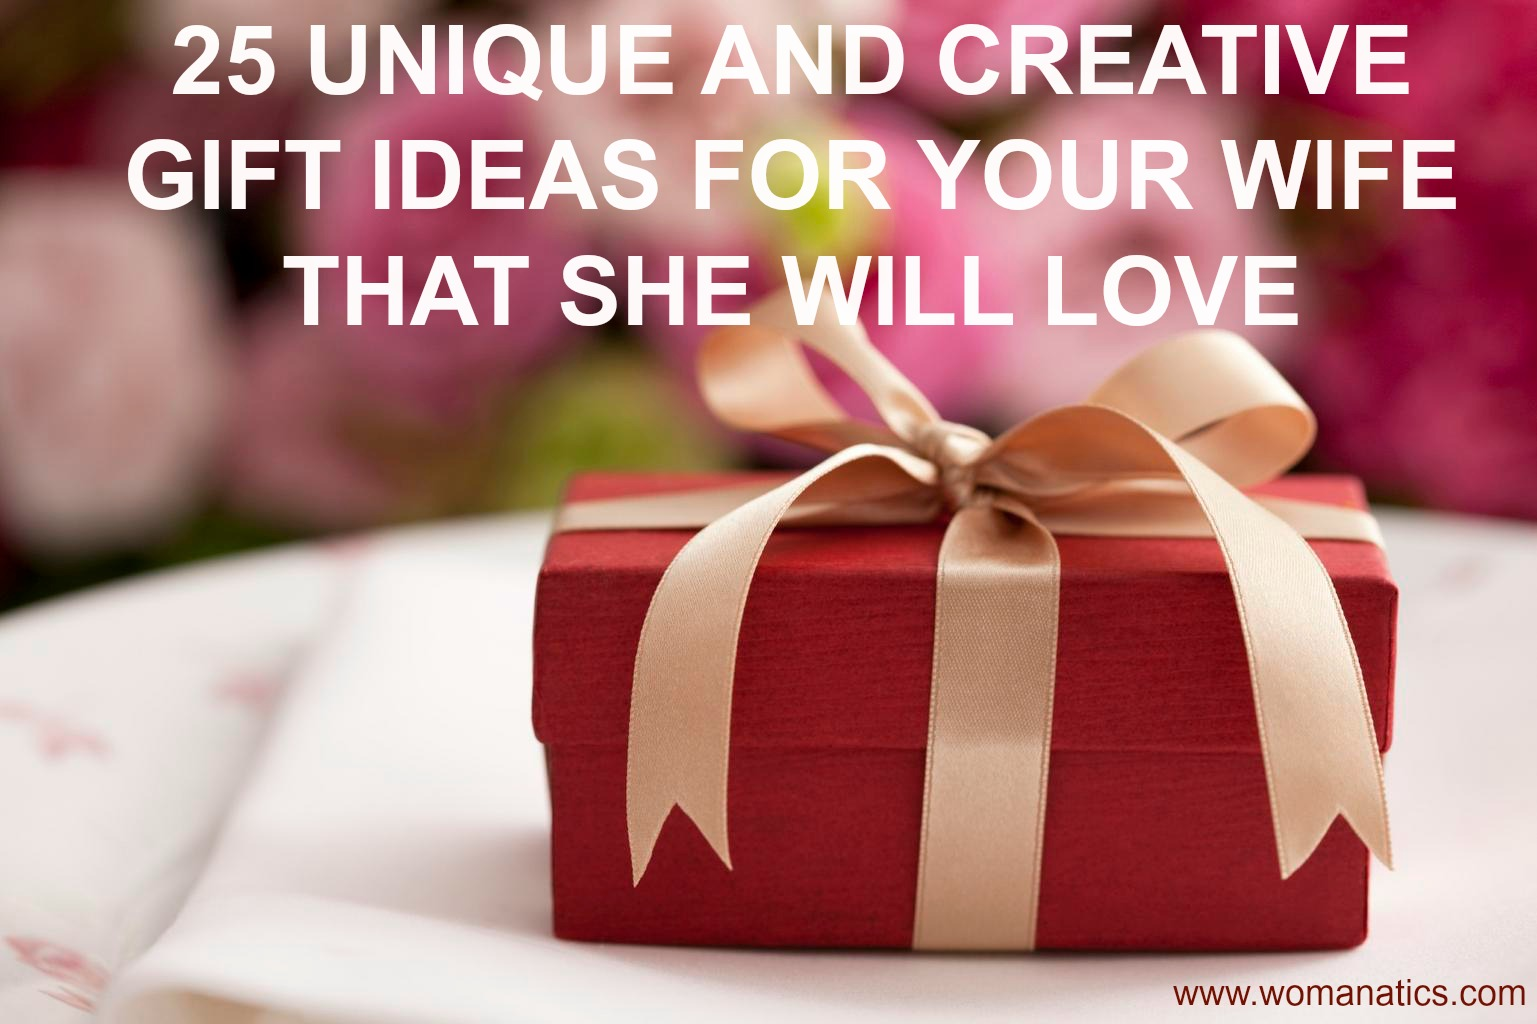 Exceptional Christmas Ideas For Wife Part - 12: Womanatics